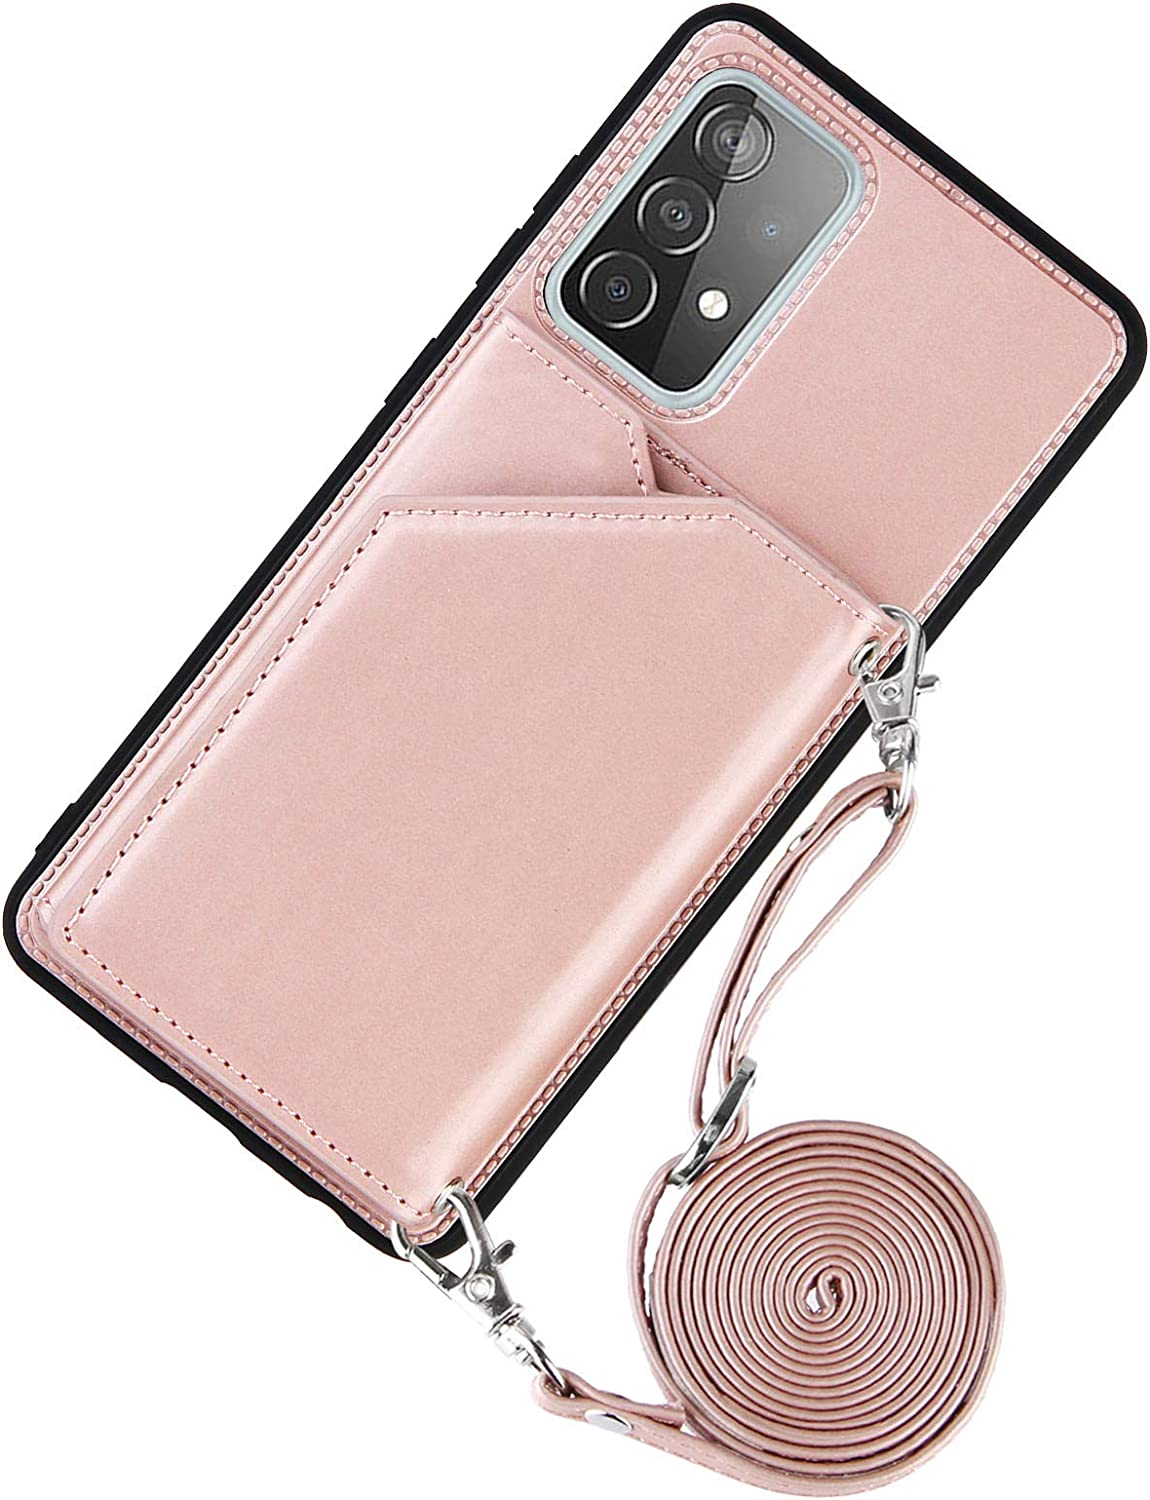 DAMONDY for Galaxy A52 Case,Leather Wallet Case with Lanyard Detachable Strap Designs for Girls Women,with Kickstand Card Slots CoverPhone Case for Samsung A52 5G -Rose Gold